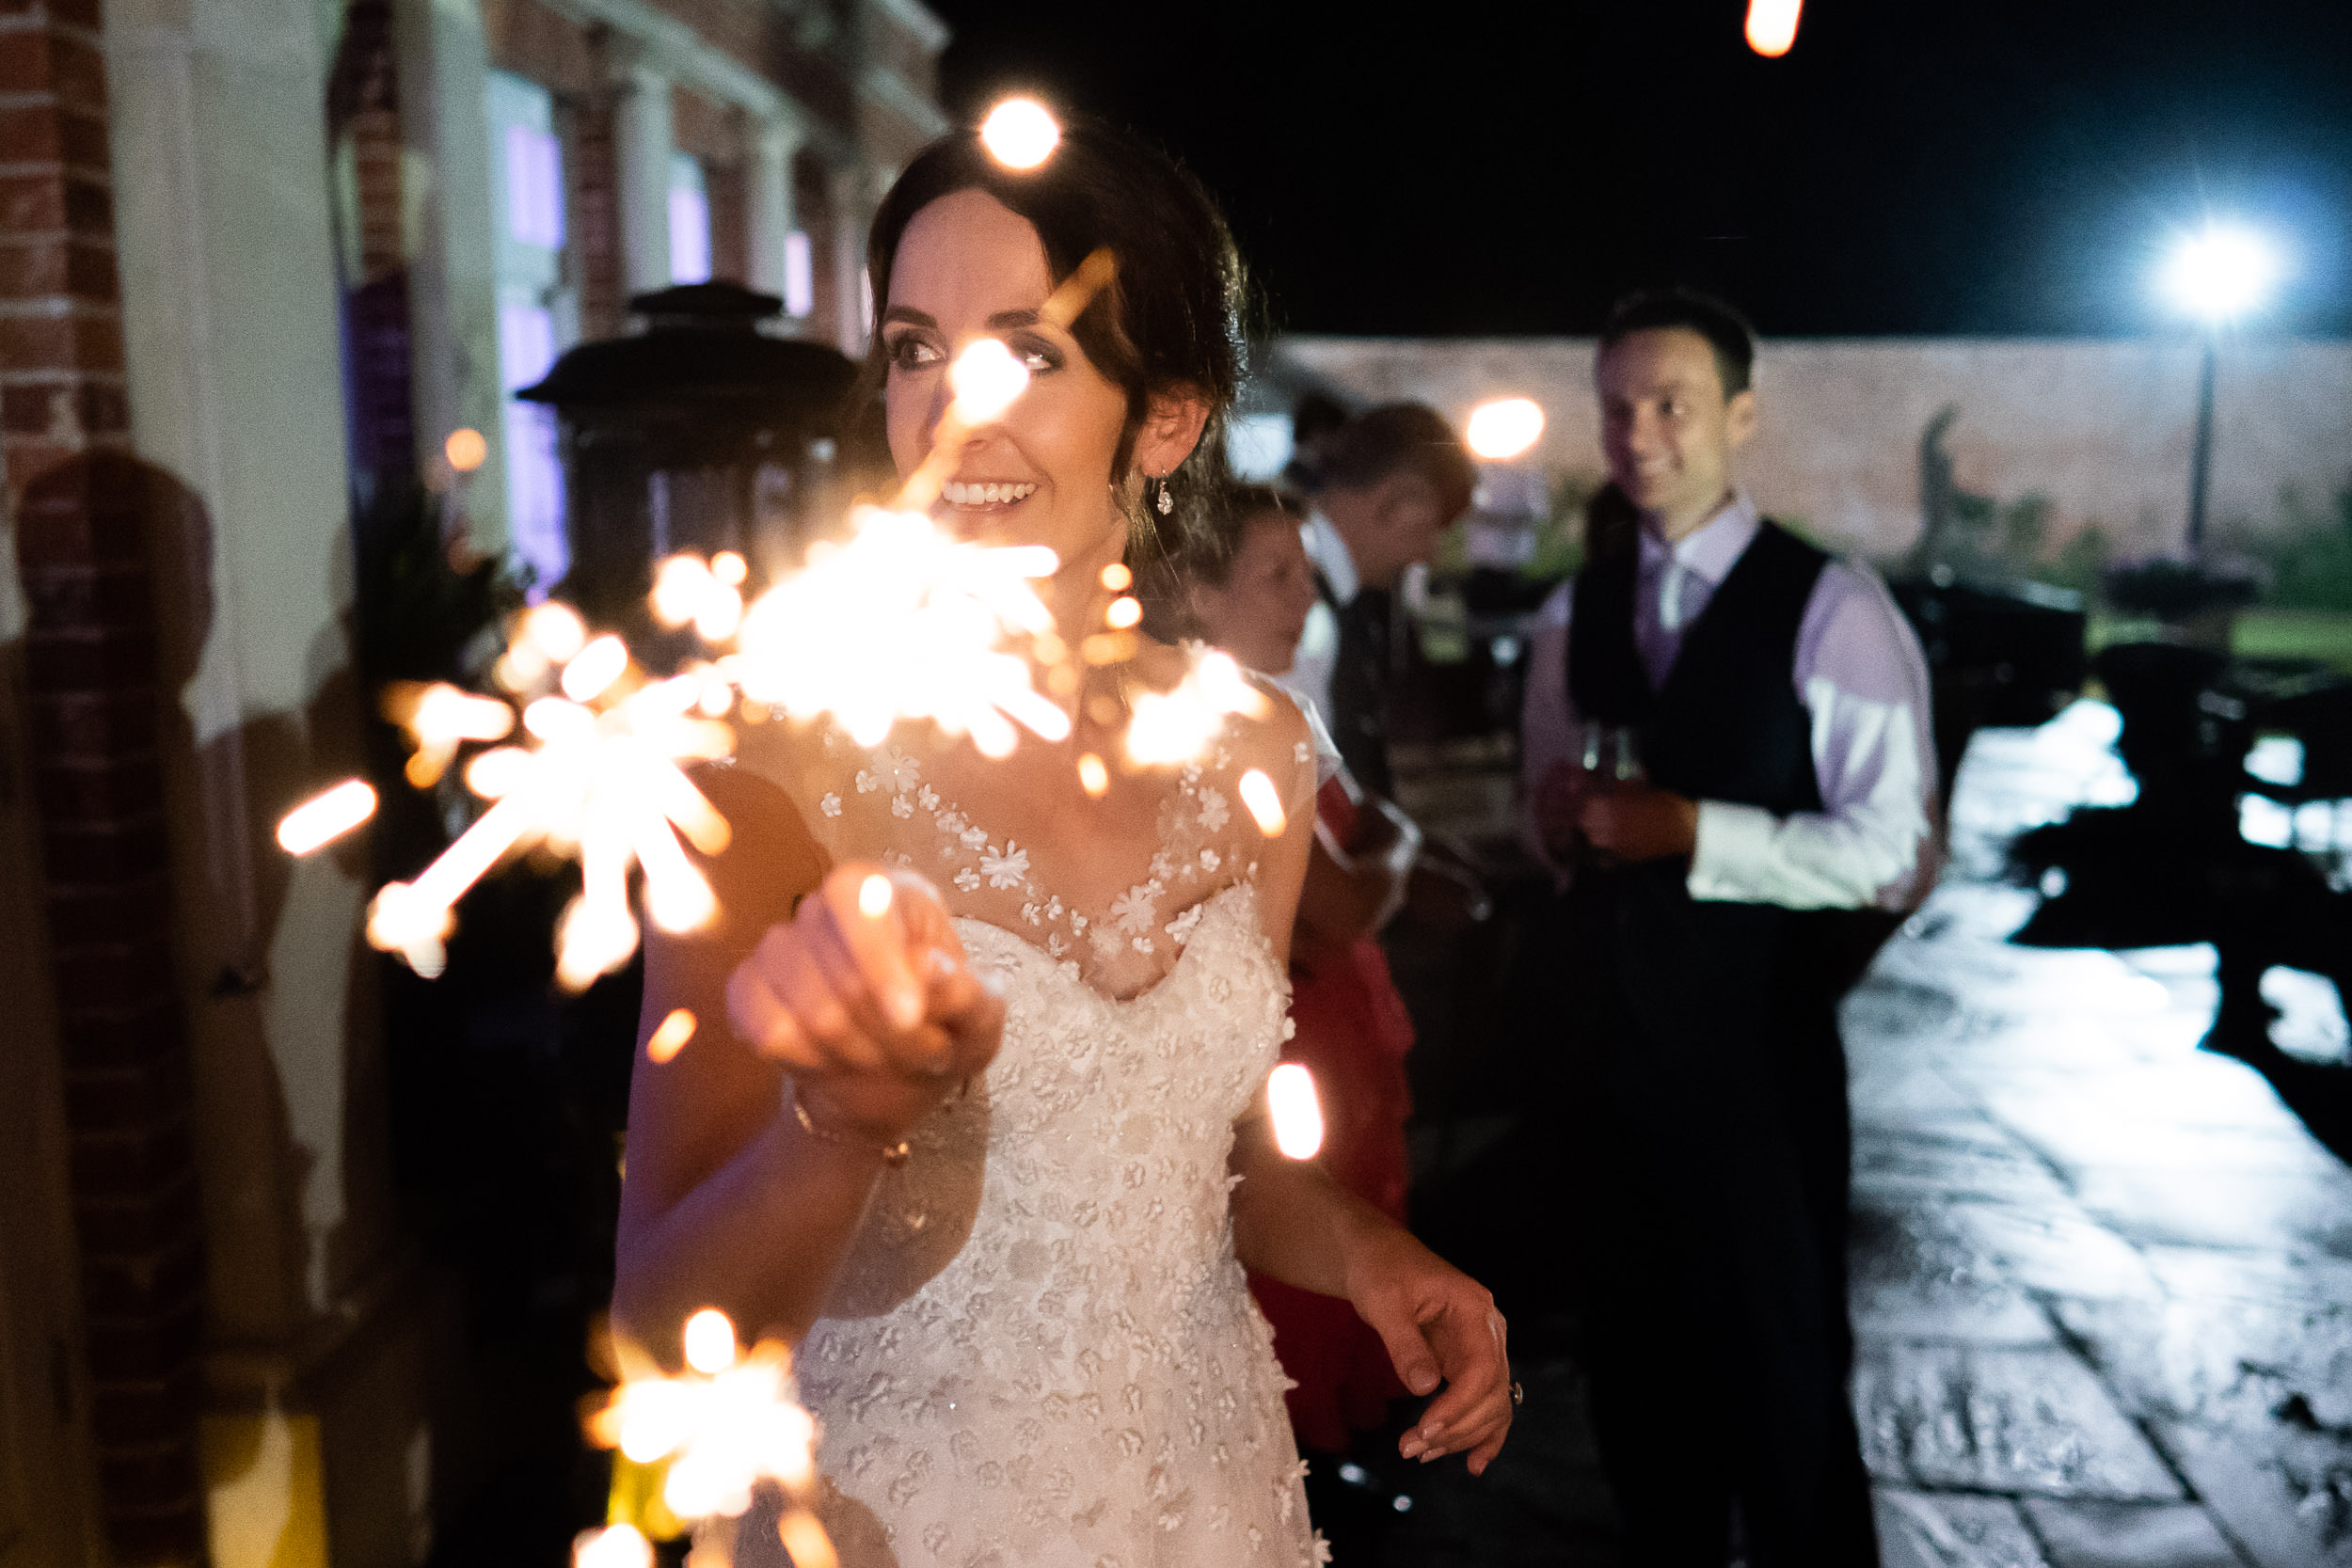 Orchardleigh Estate Wedding - Bride with Sparklers at the Evening Reception